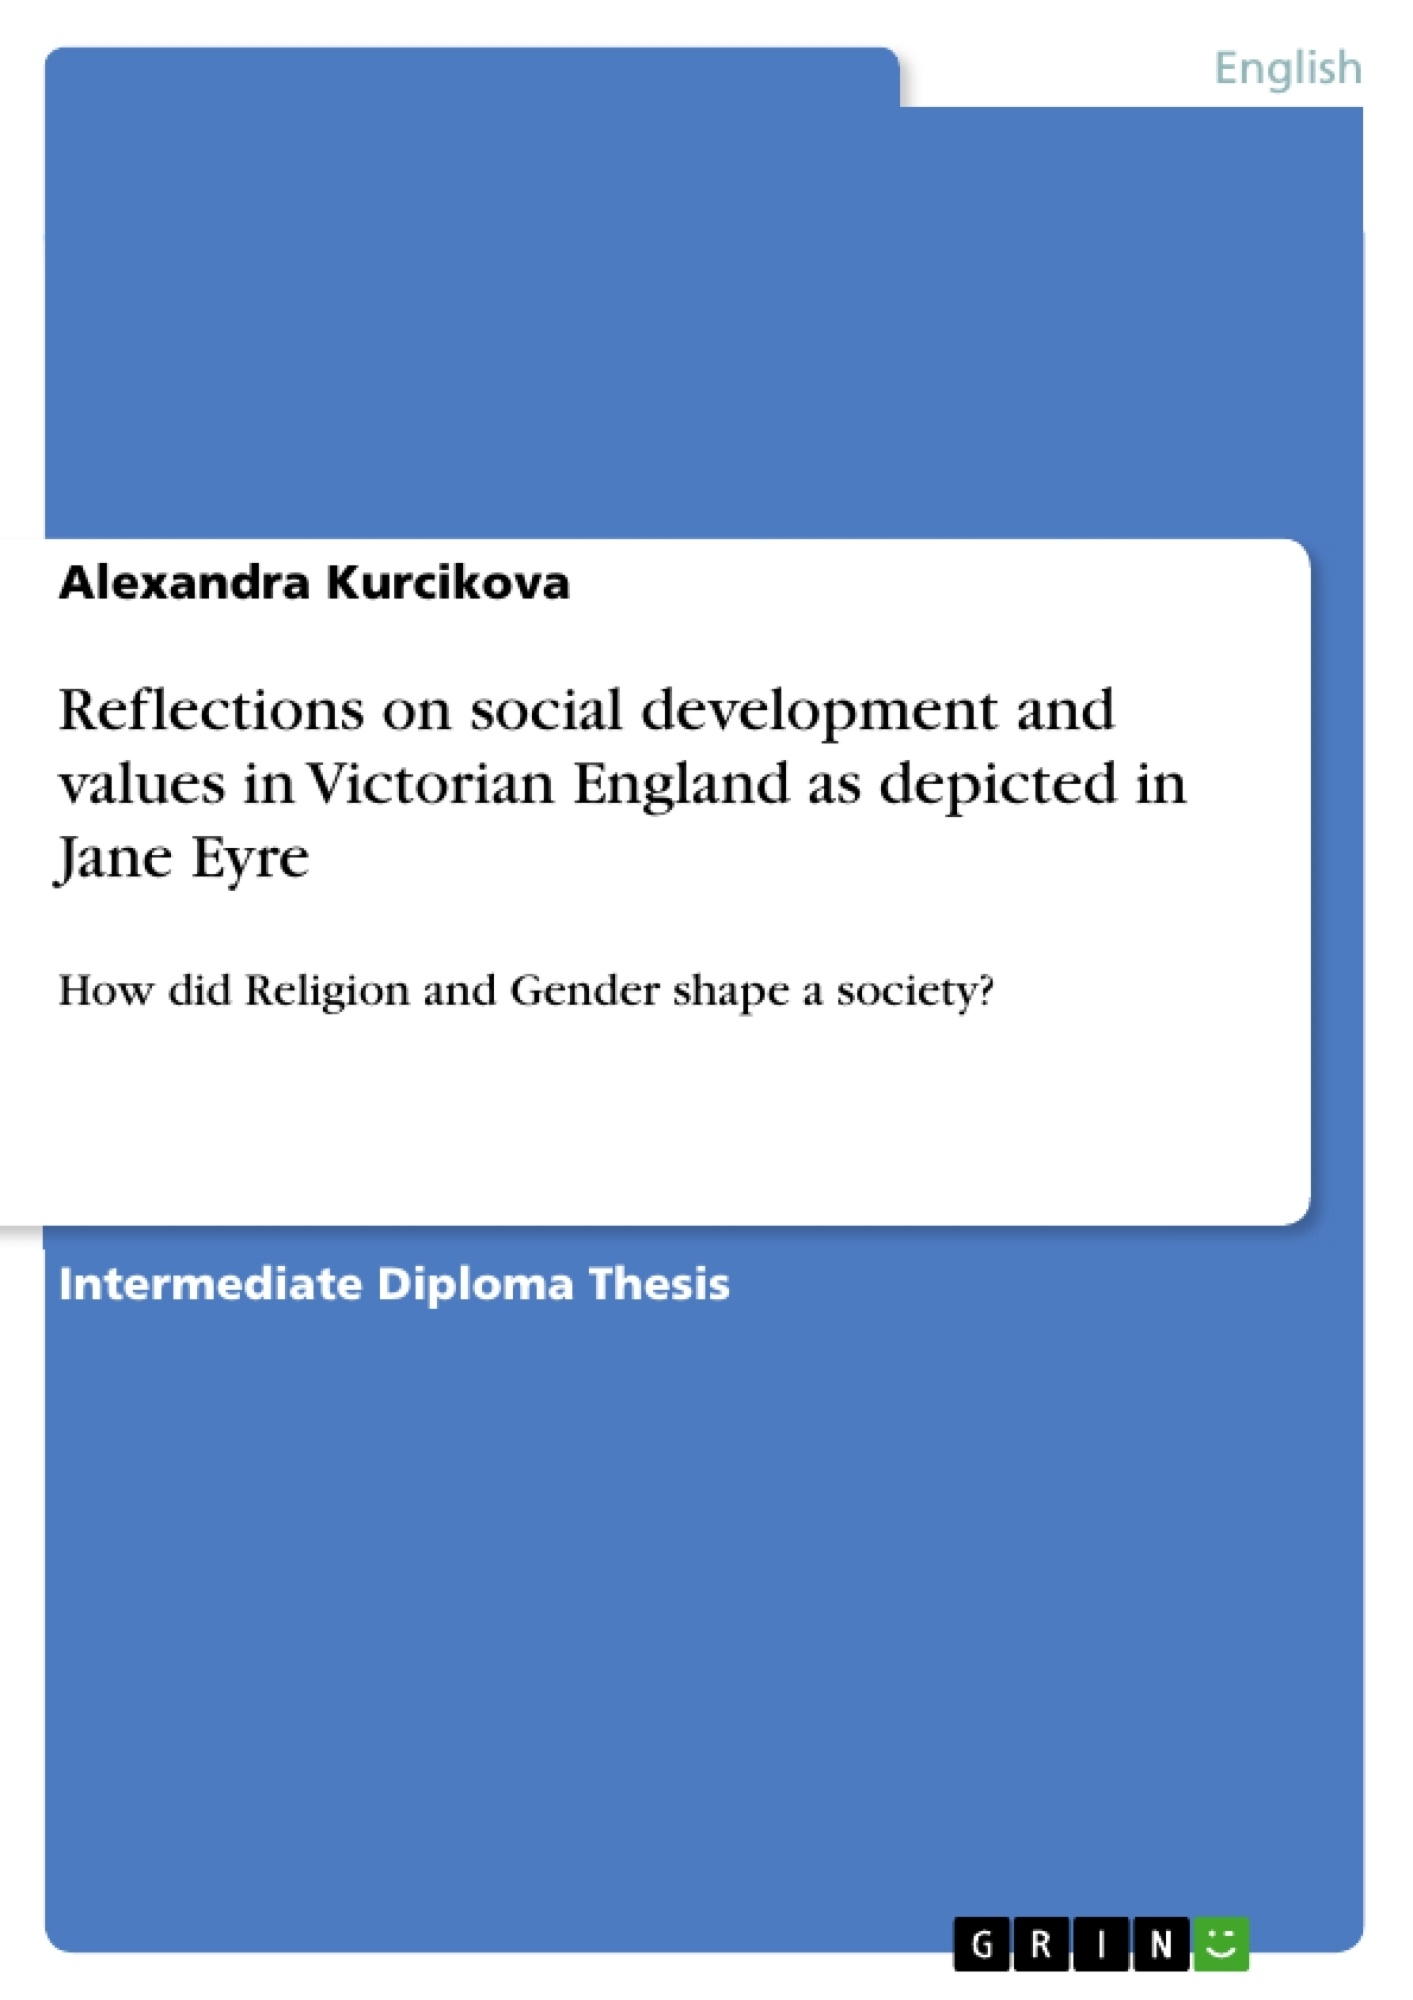 Title: Reflections on social development and values in Victorian England as depicted in Jane Eyre